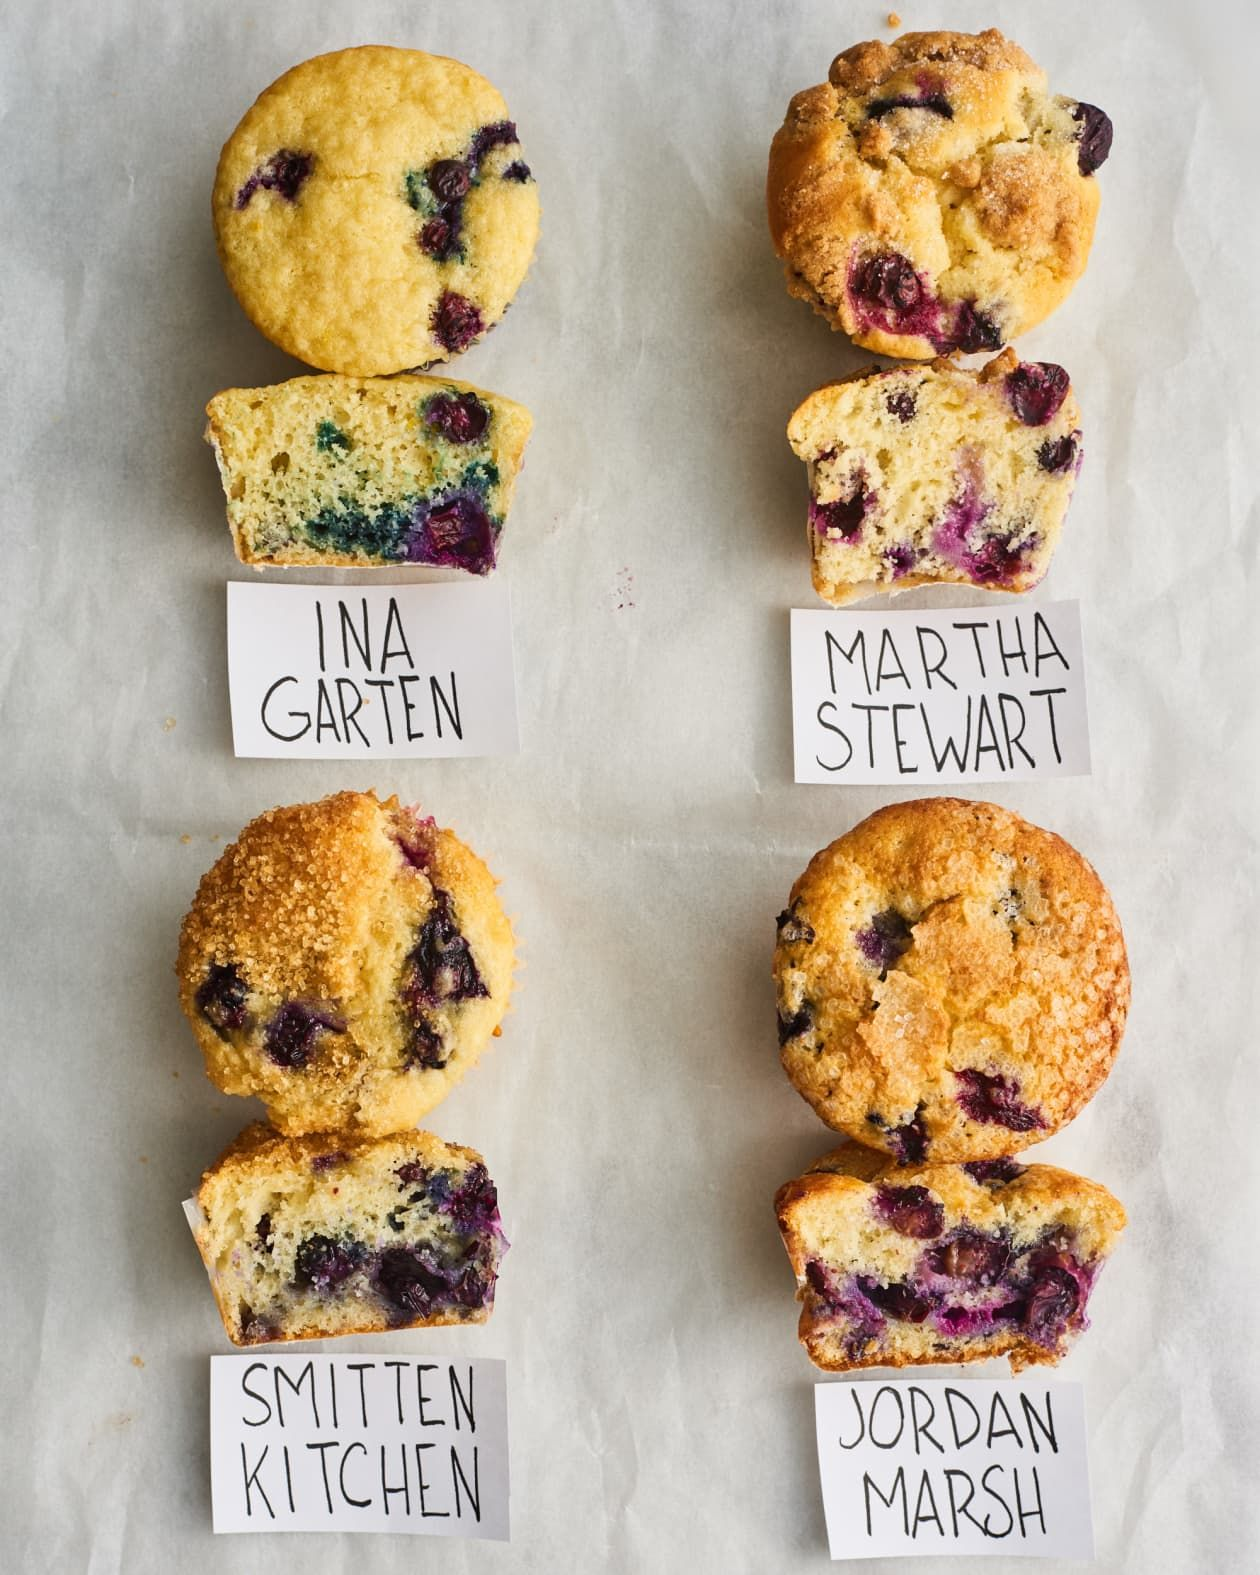 We Tested 4 Famous Blueberry Muffins and Found a Clear